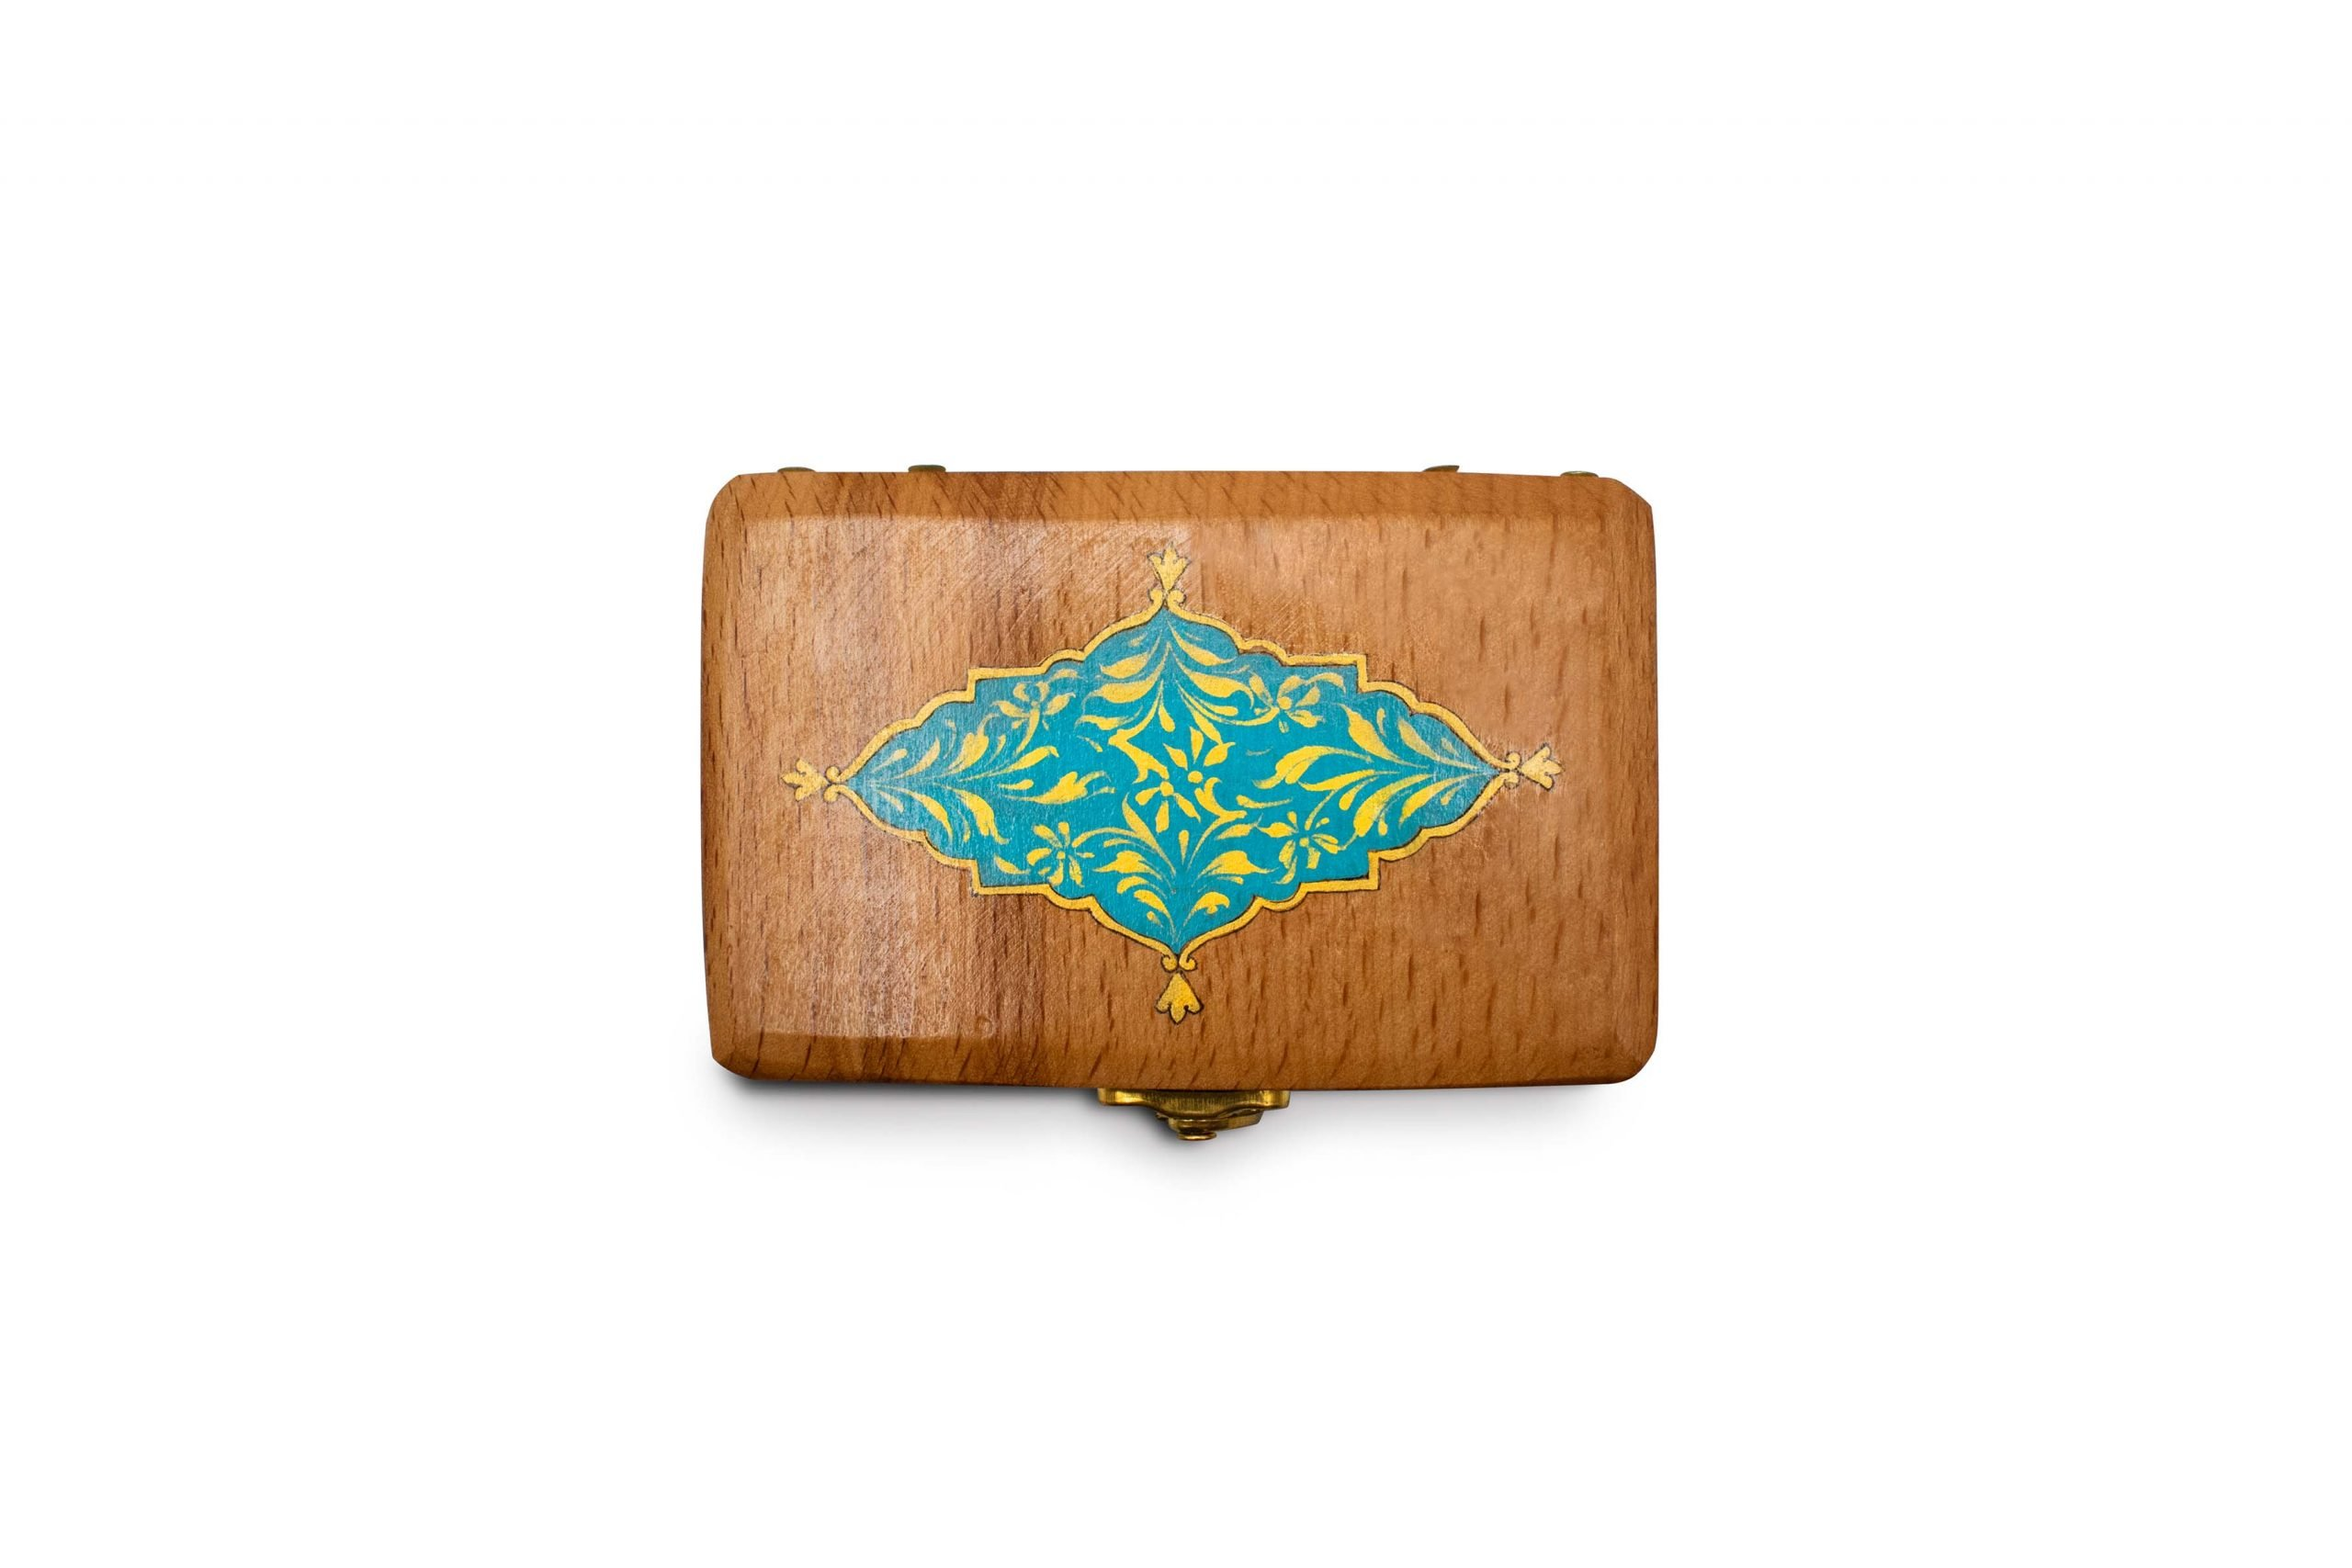 Wooden Jewellery Box Watercolour Painting